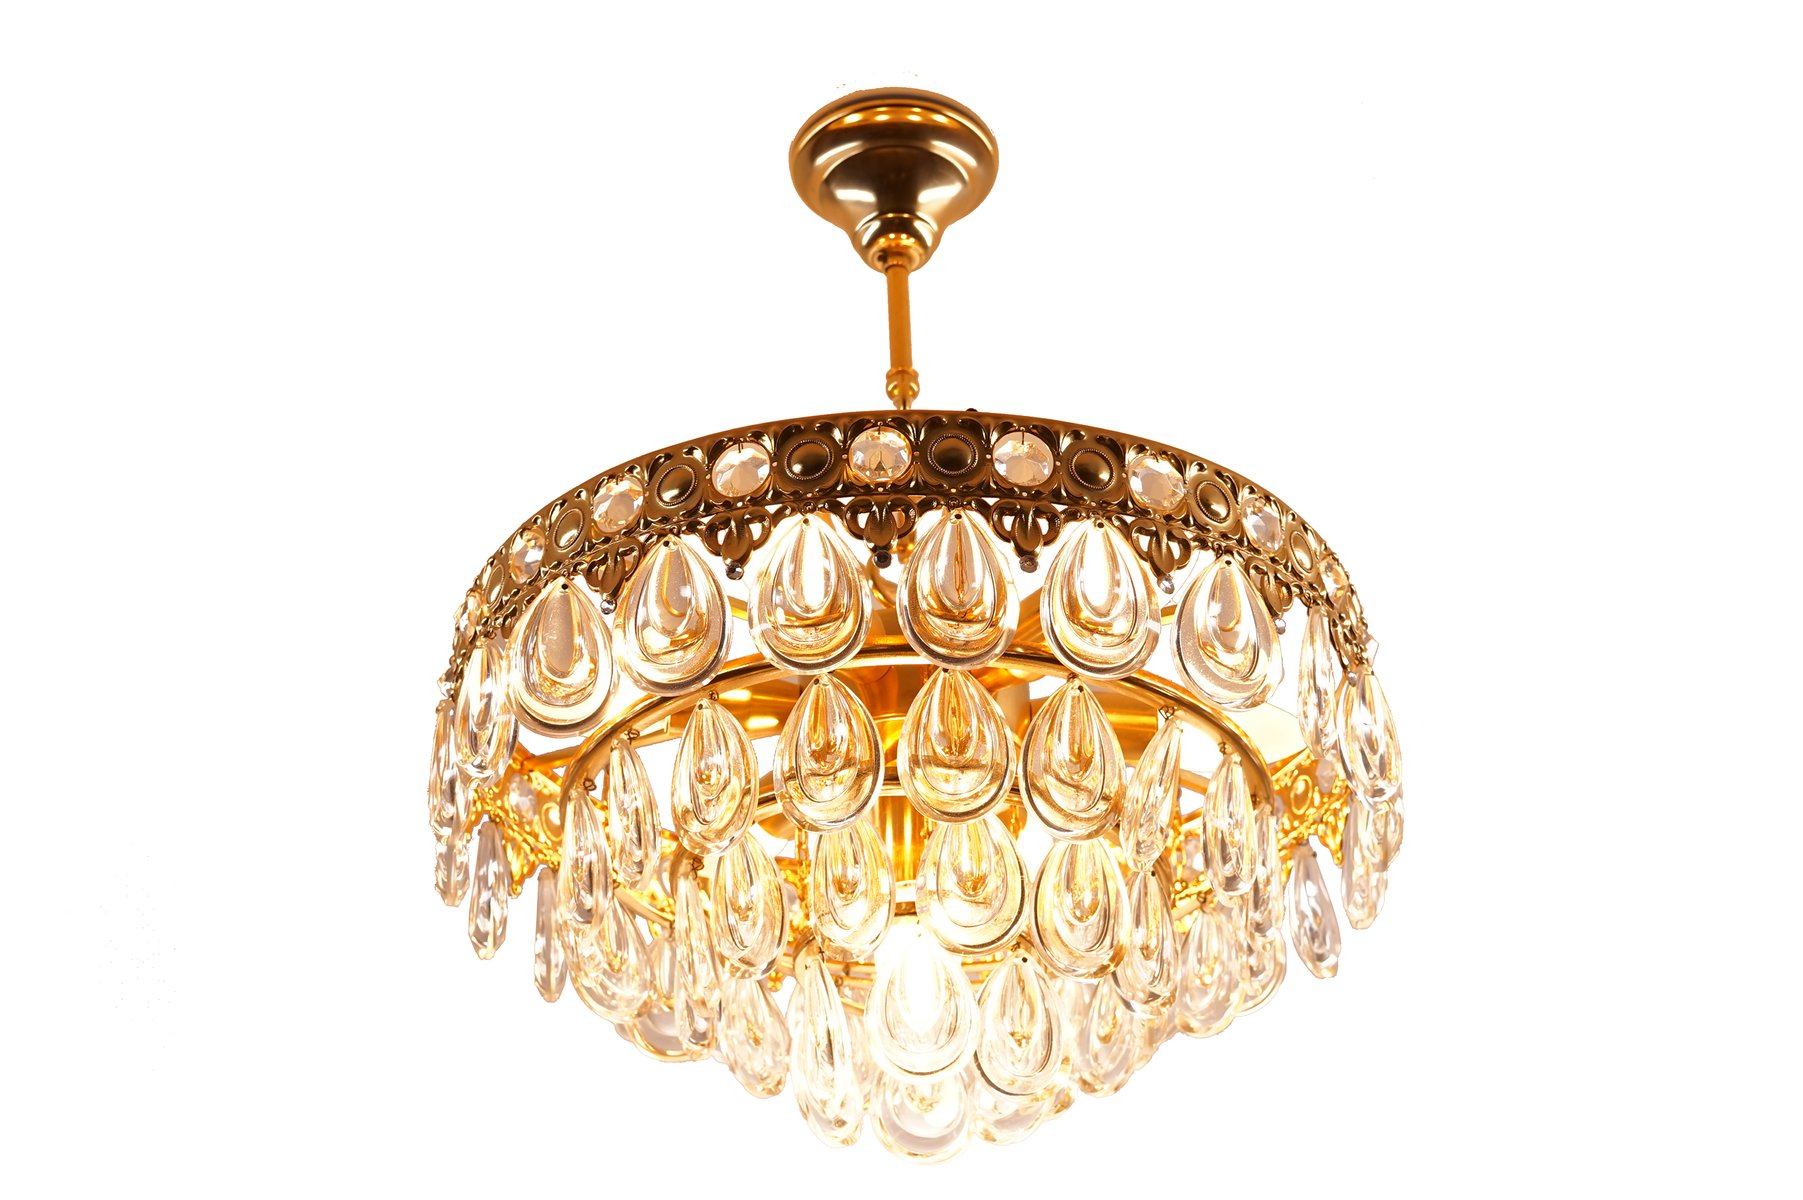 Vintage Teardrop Crystal Chandelier from Palwa for sale at Pamono